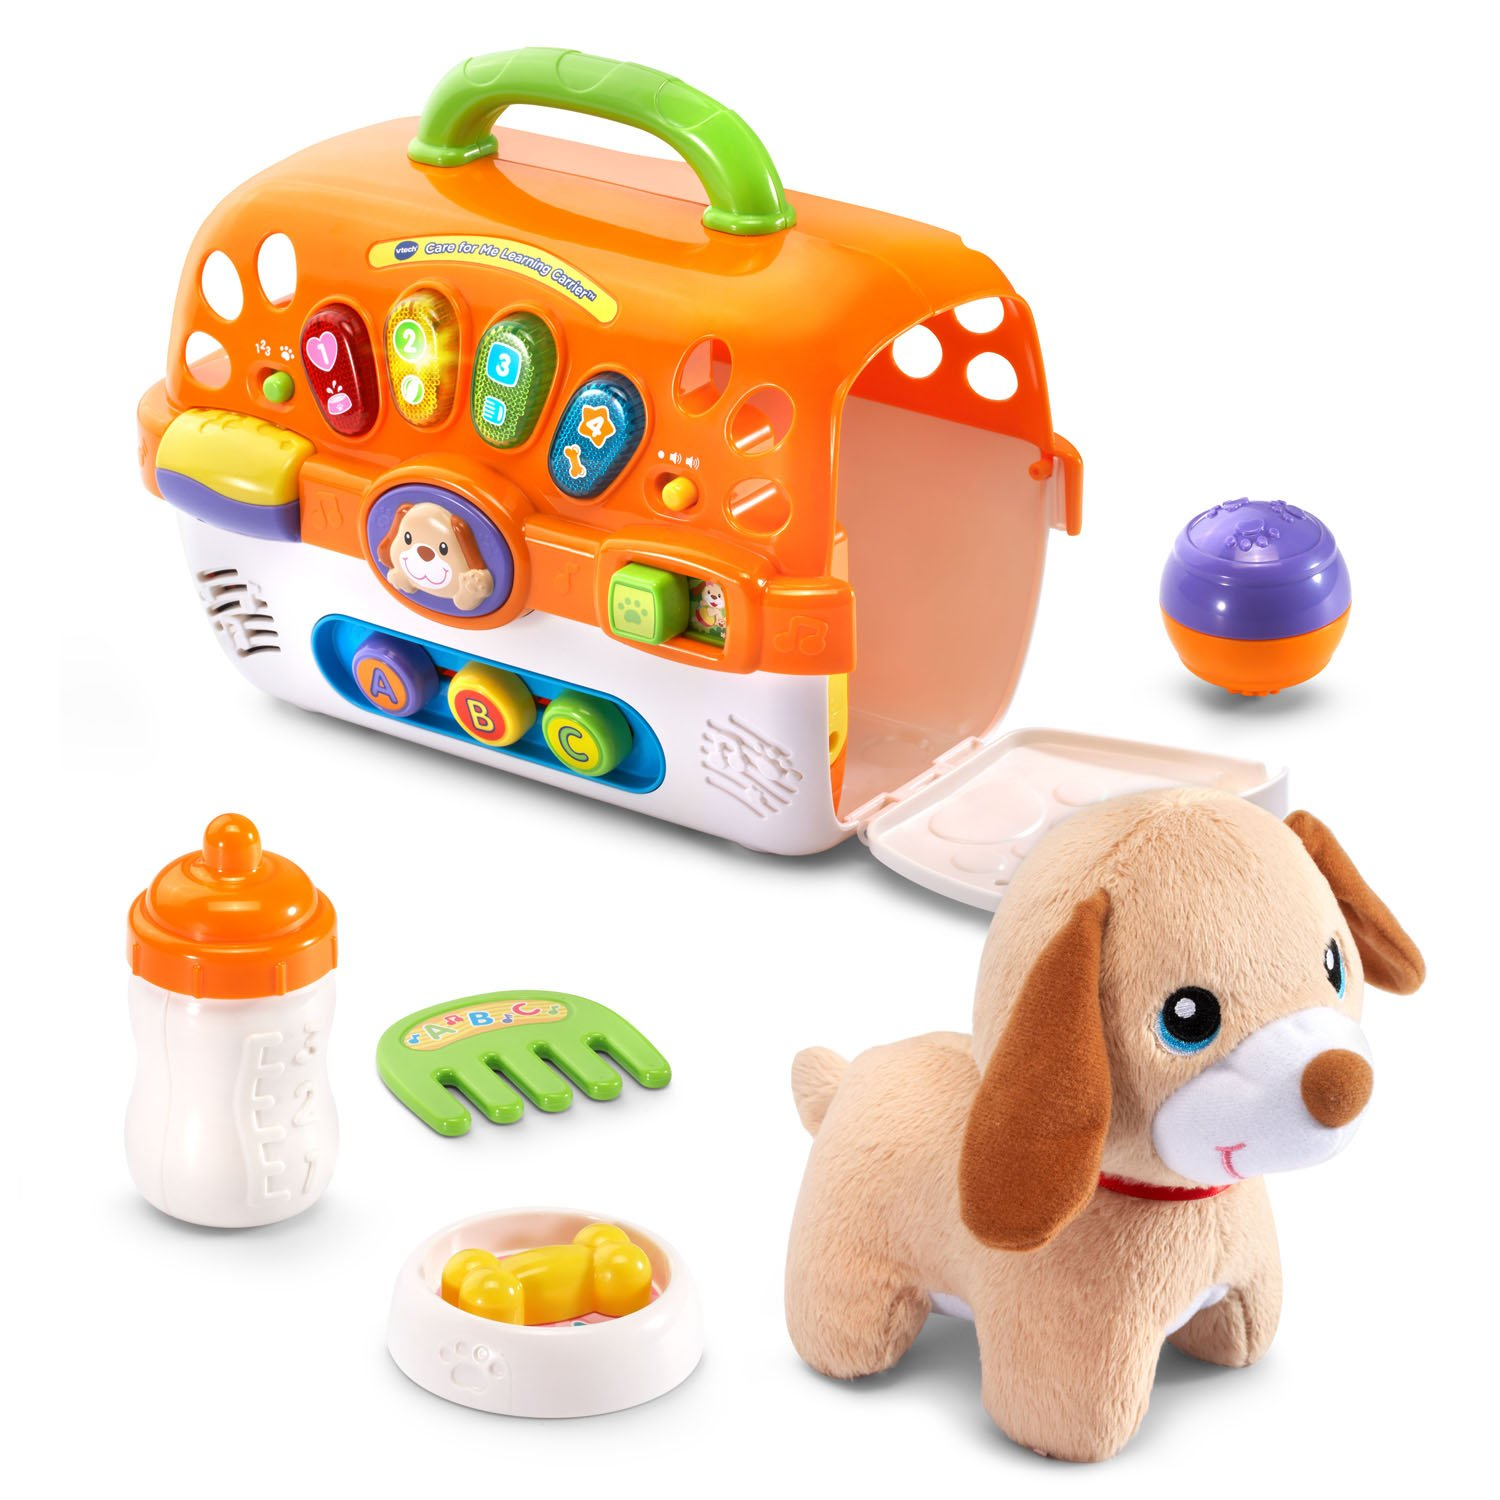 VTech Care for Me Learning Carrier Toy, Orange by VTech